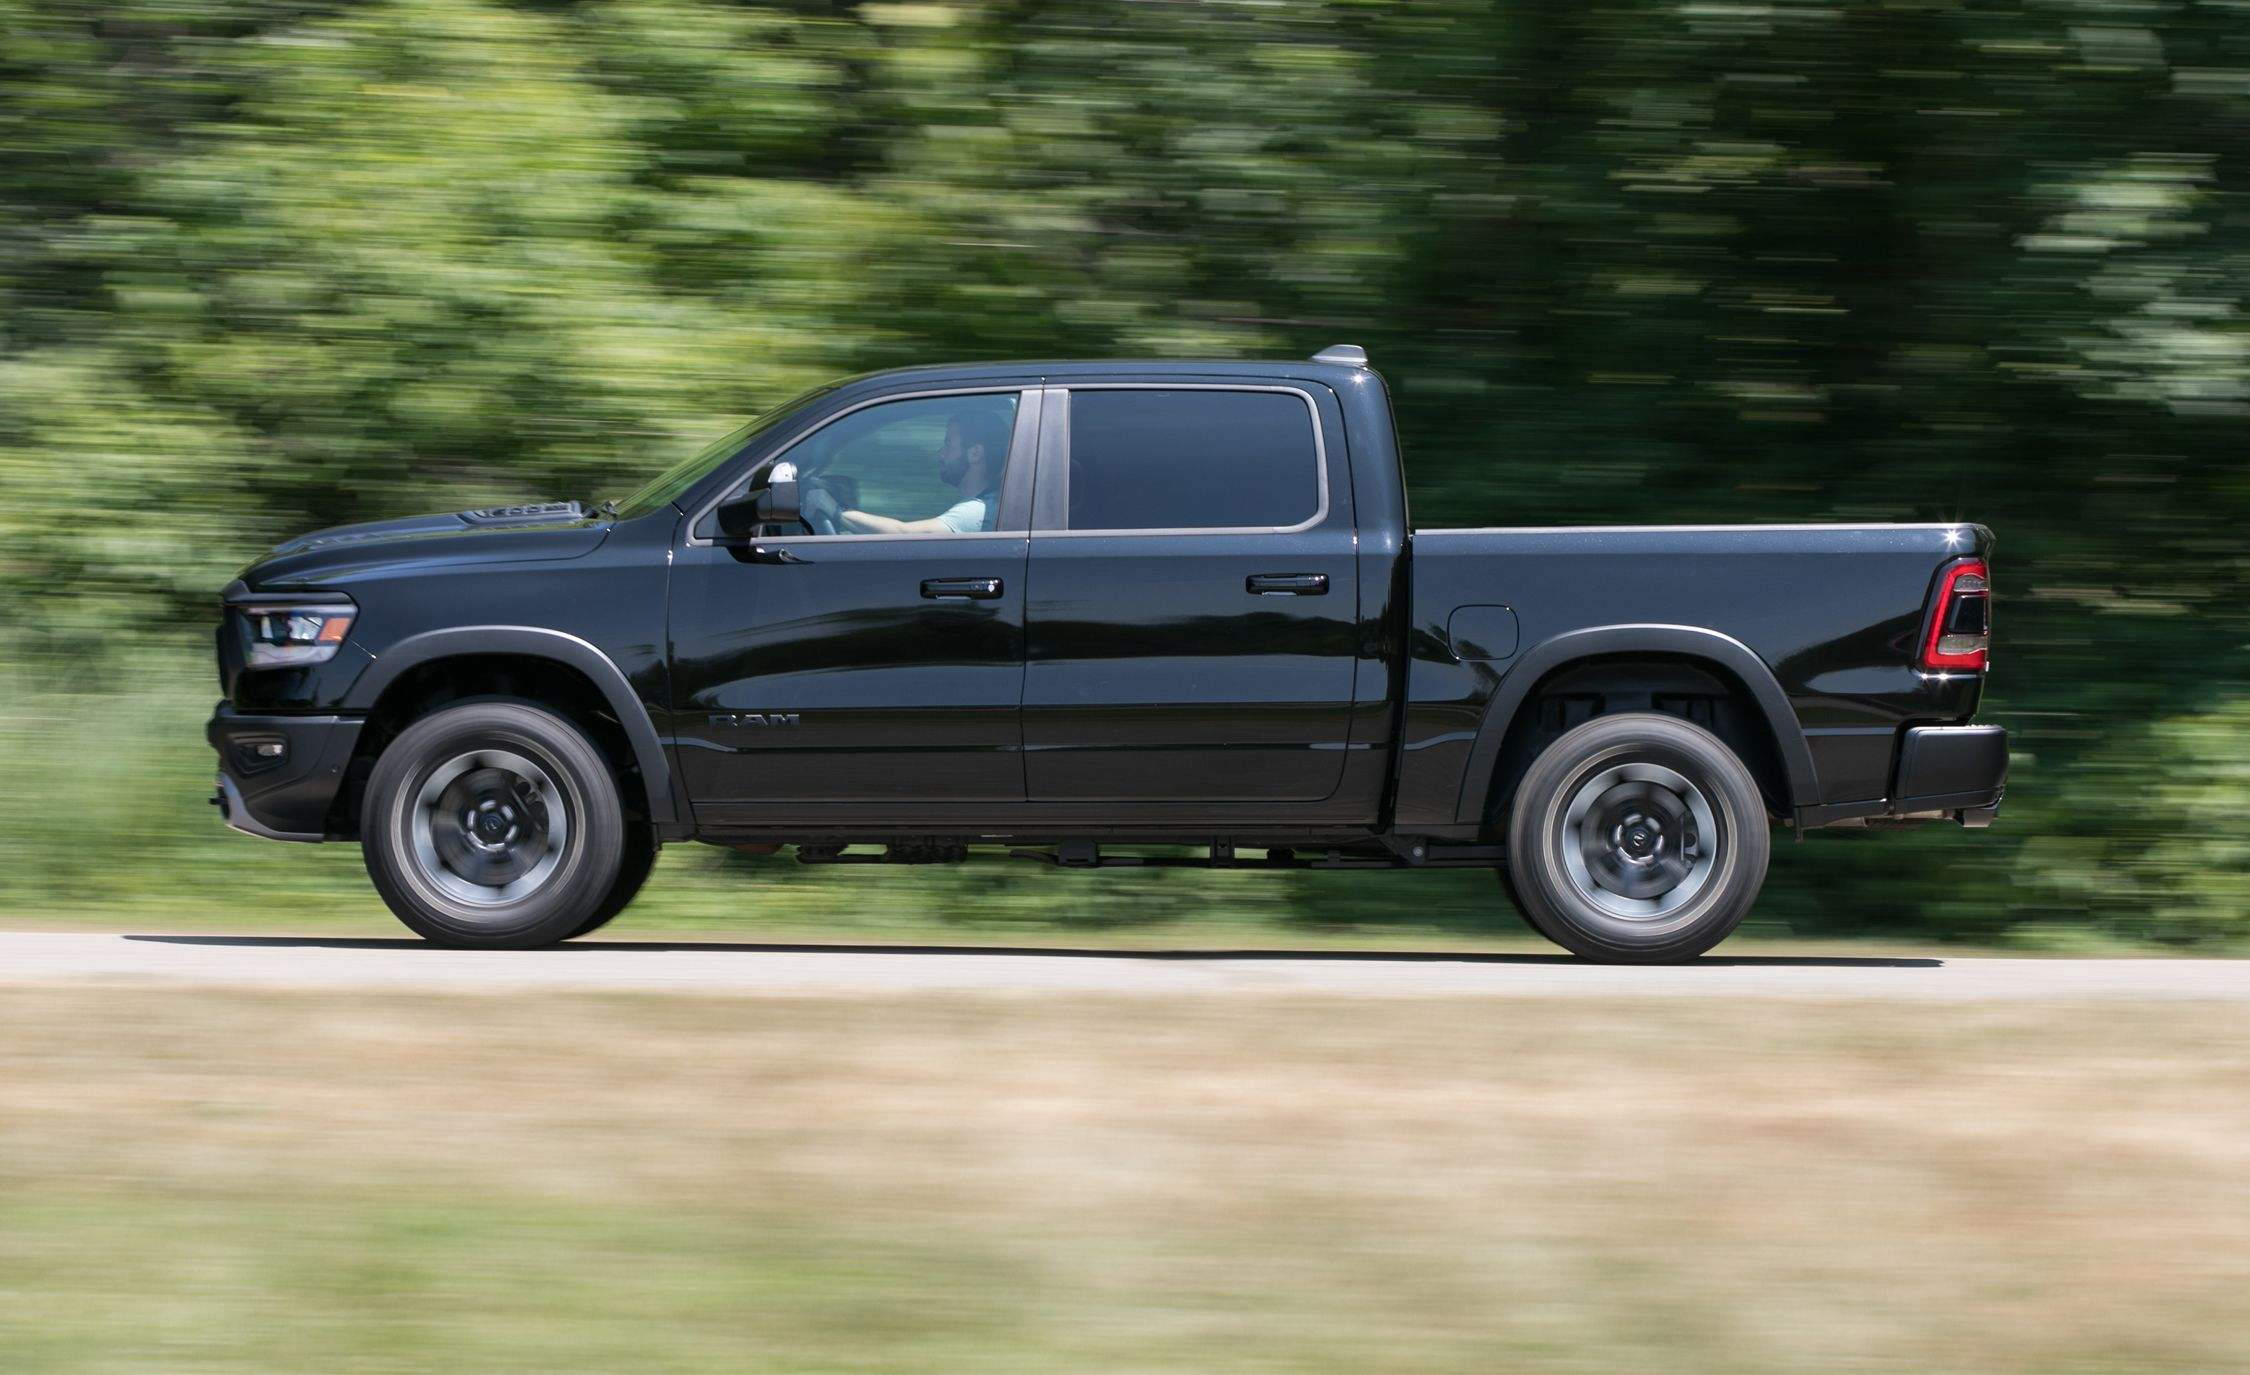 2019 Ram 1500 Rebel – A Better Off-Road Pickup